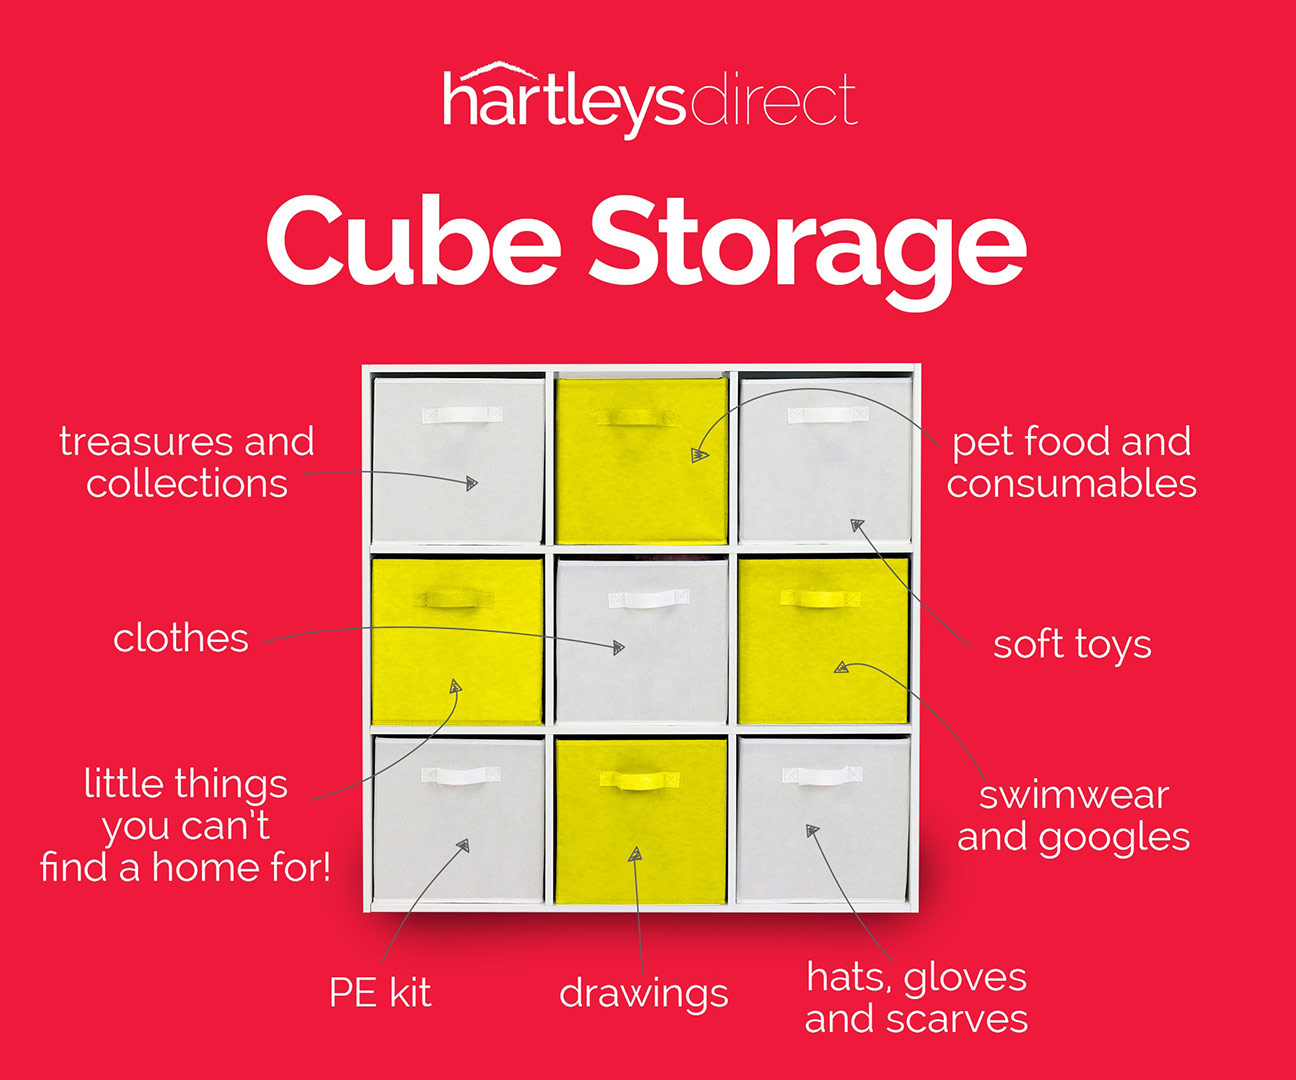 image of hartleys 9 cube storage unit with arrows pointing to each drawer